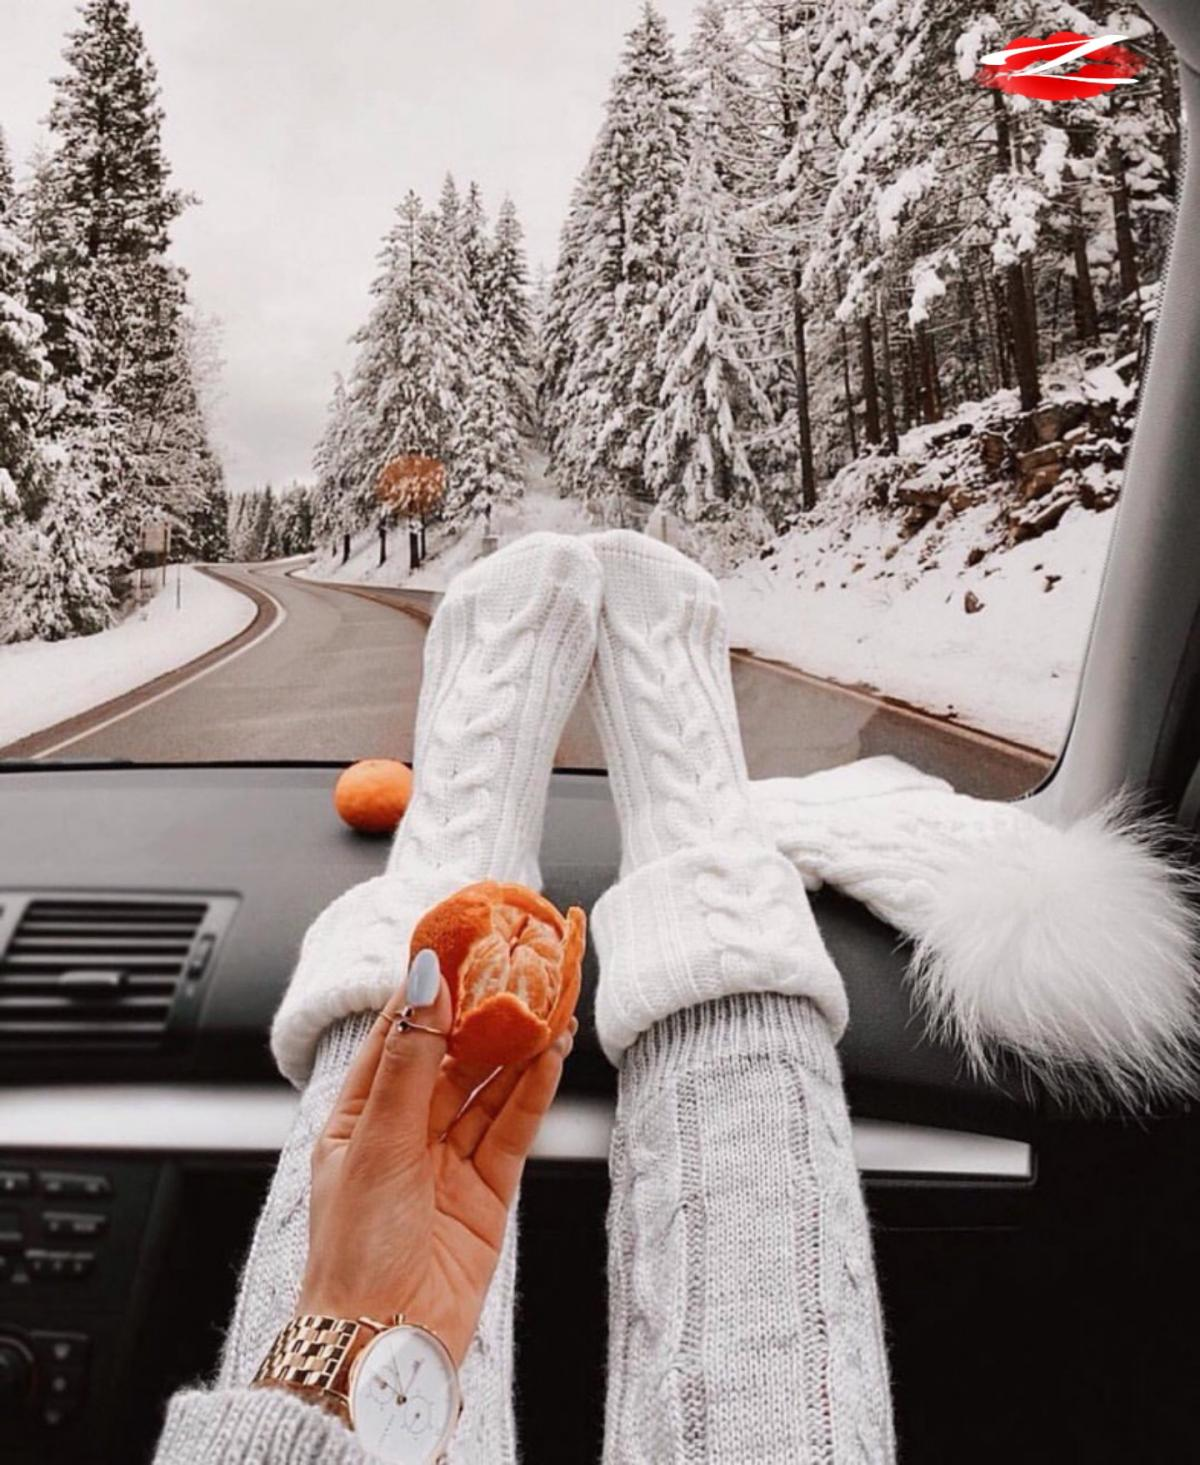 Comfortable trip to mountains. White girl' s socks and clementine